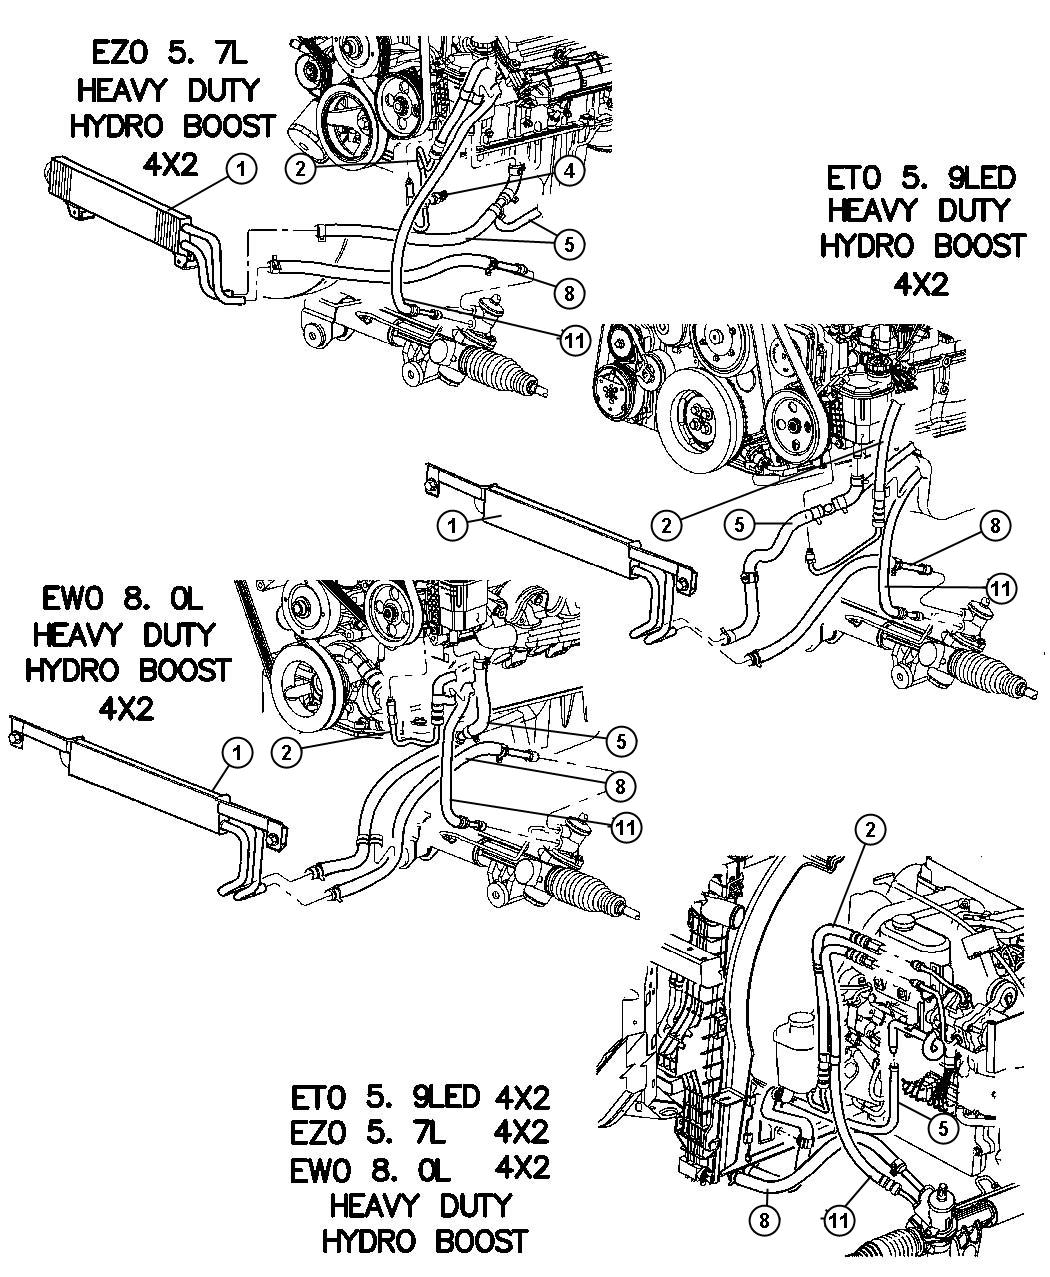 ford l9000 wiring schematic 83 chevy pickup air